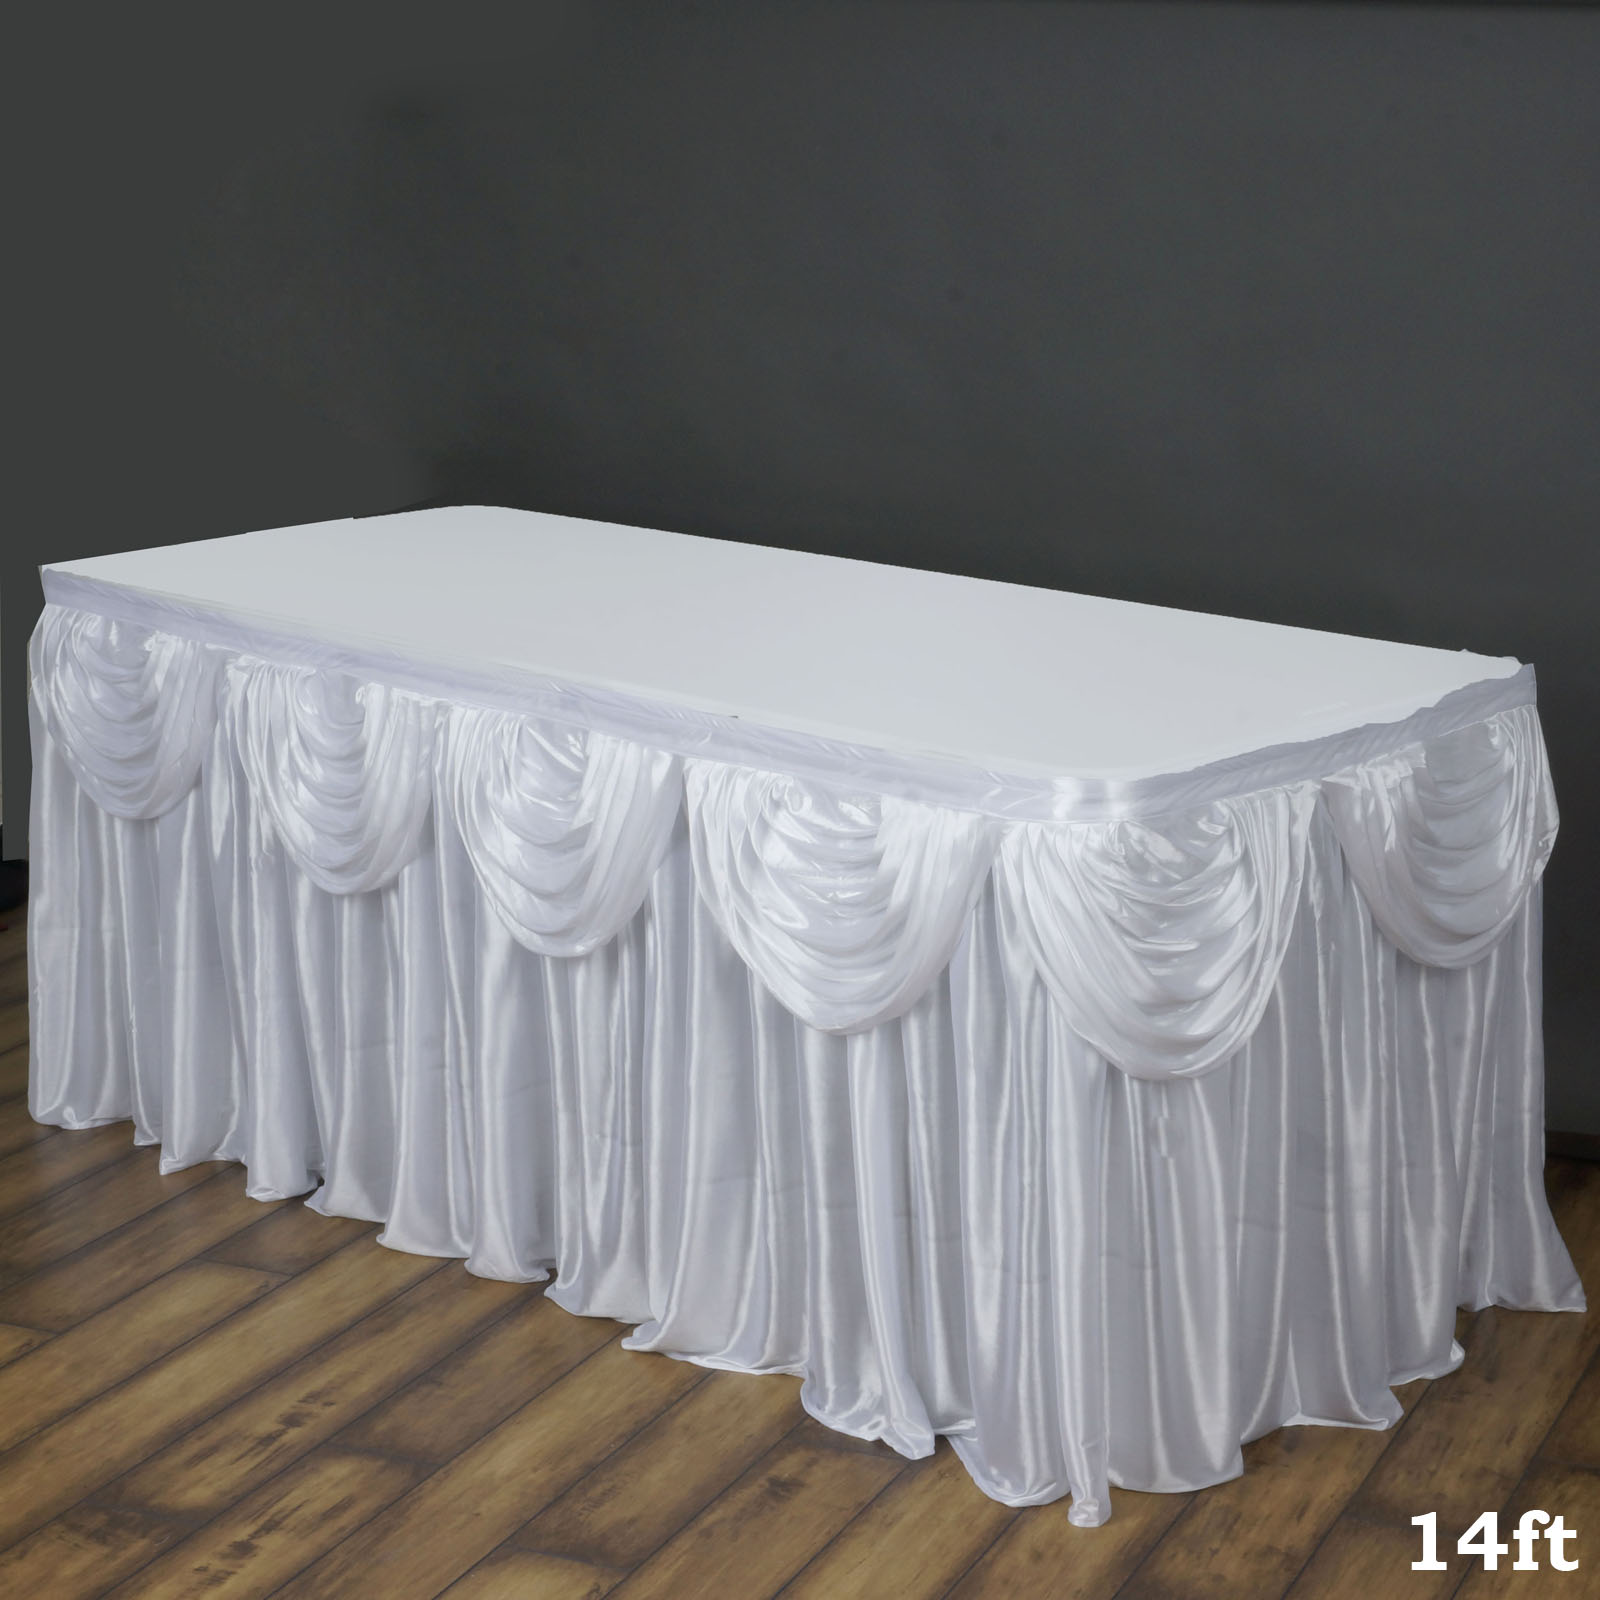 Walmart & Efavormart Satin Double Drape Table Skirt Table Covers For Rectangle Or Round Tables 14Ft